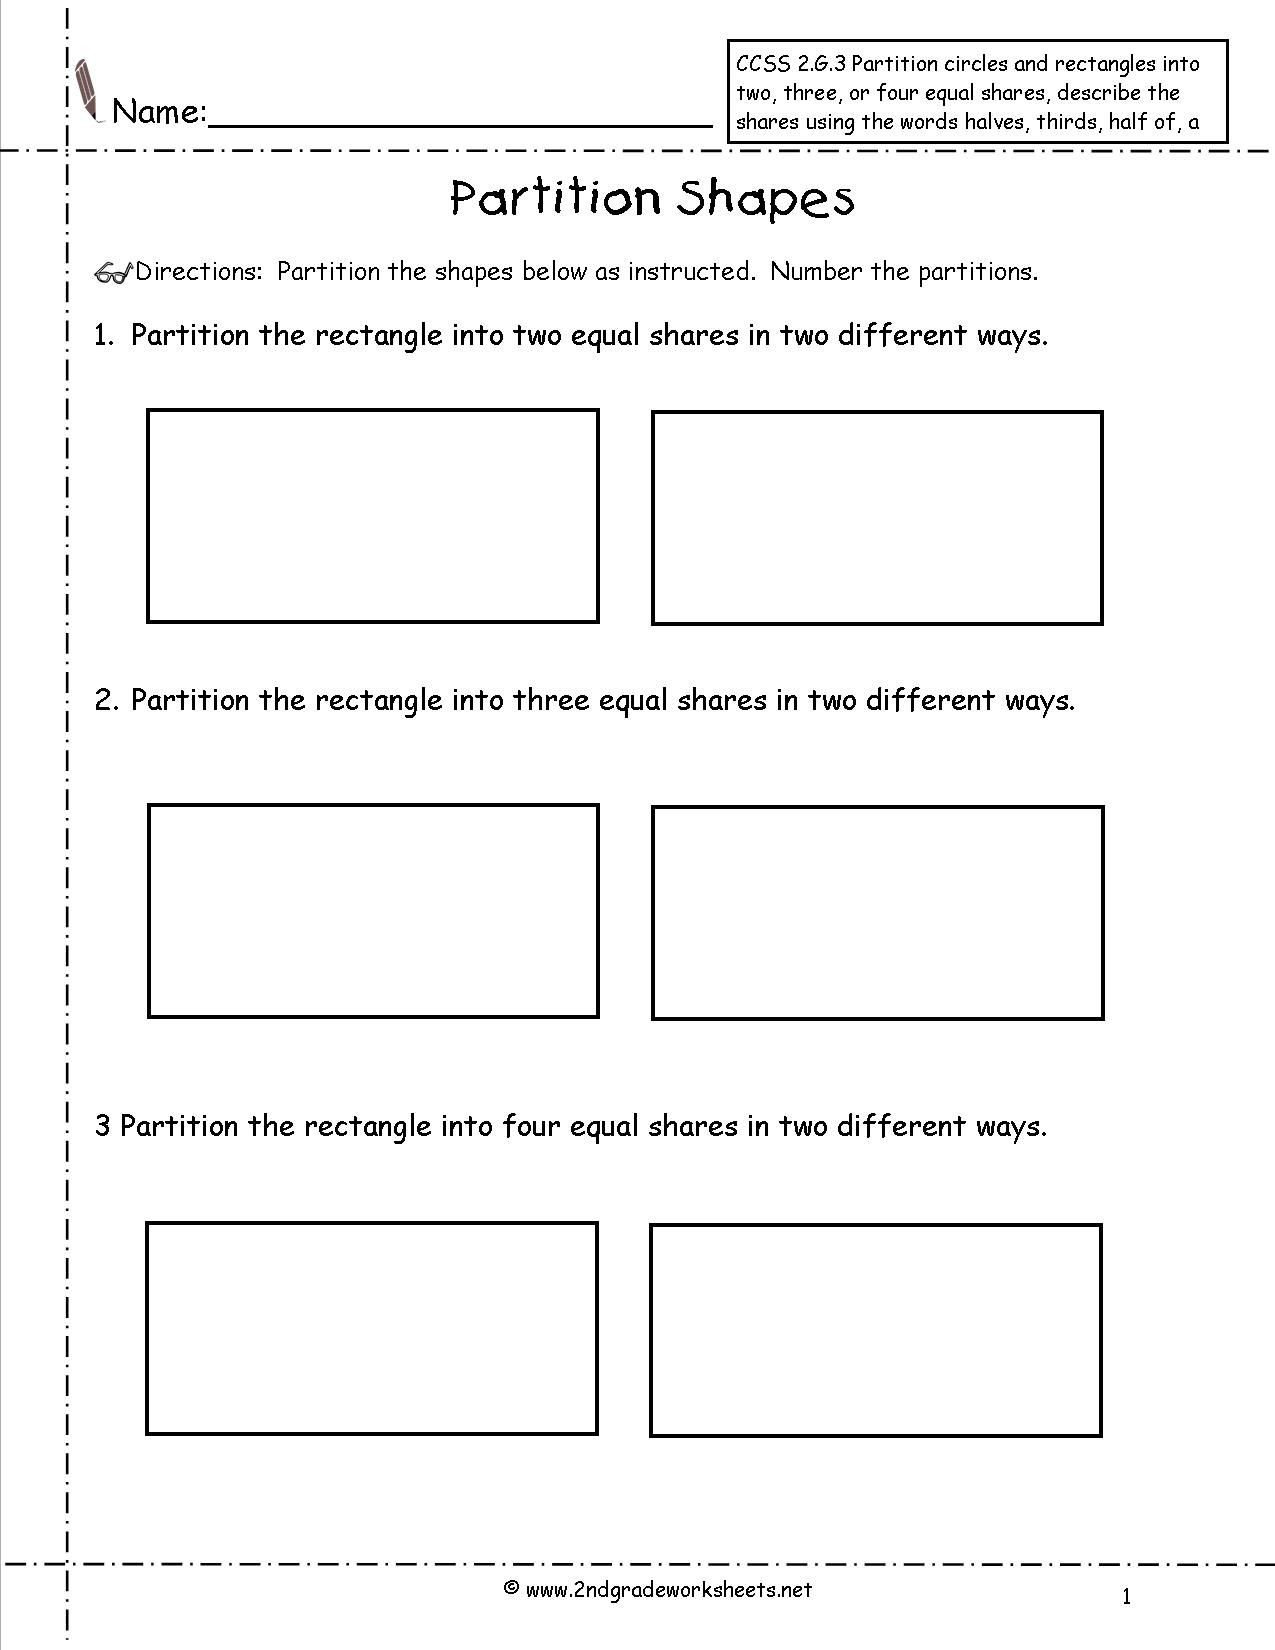 3rd Grade Geometry Worksheets Pdf Ccss 2 G 3 Worksheets Partition Shapes